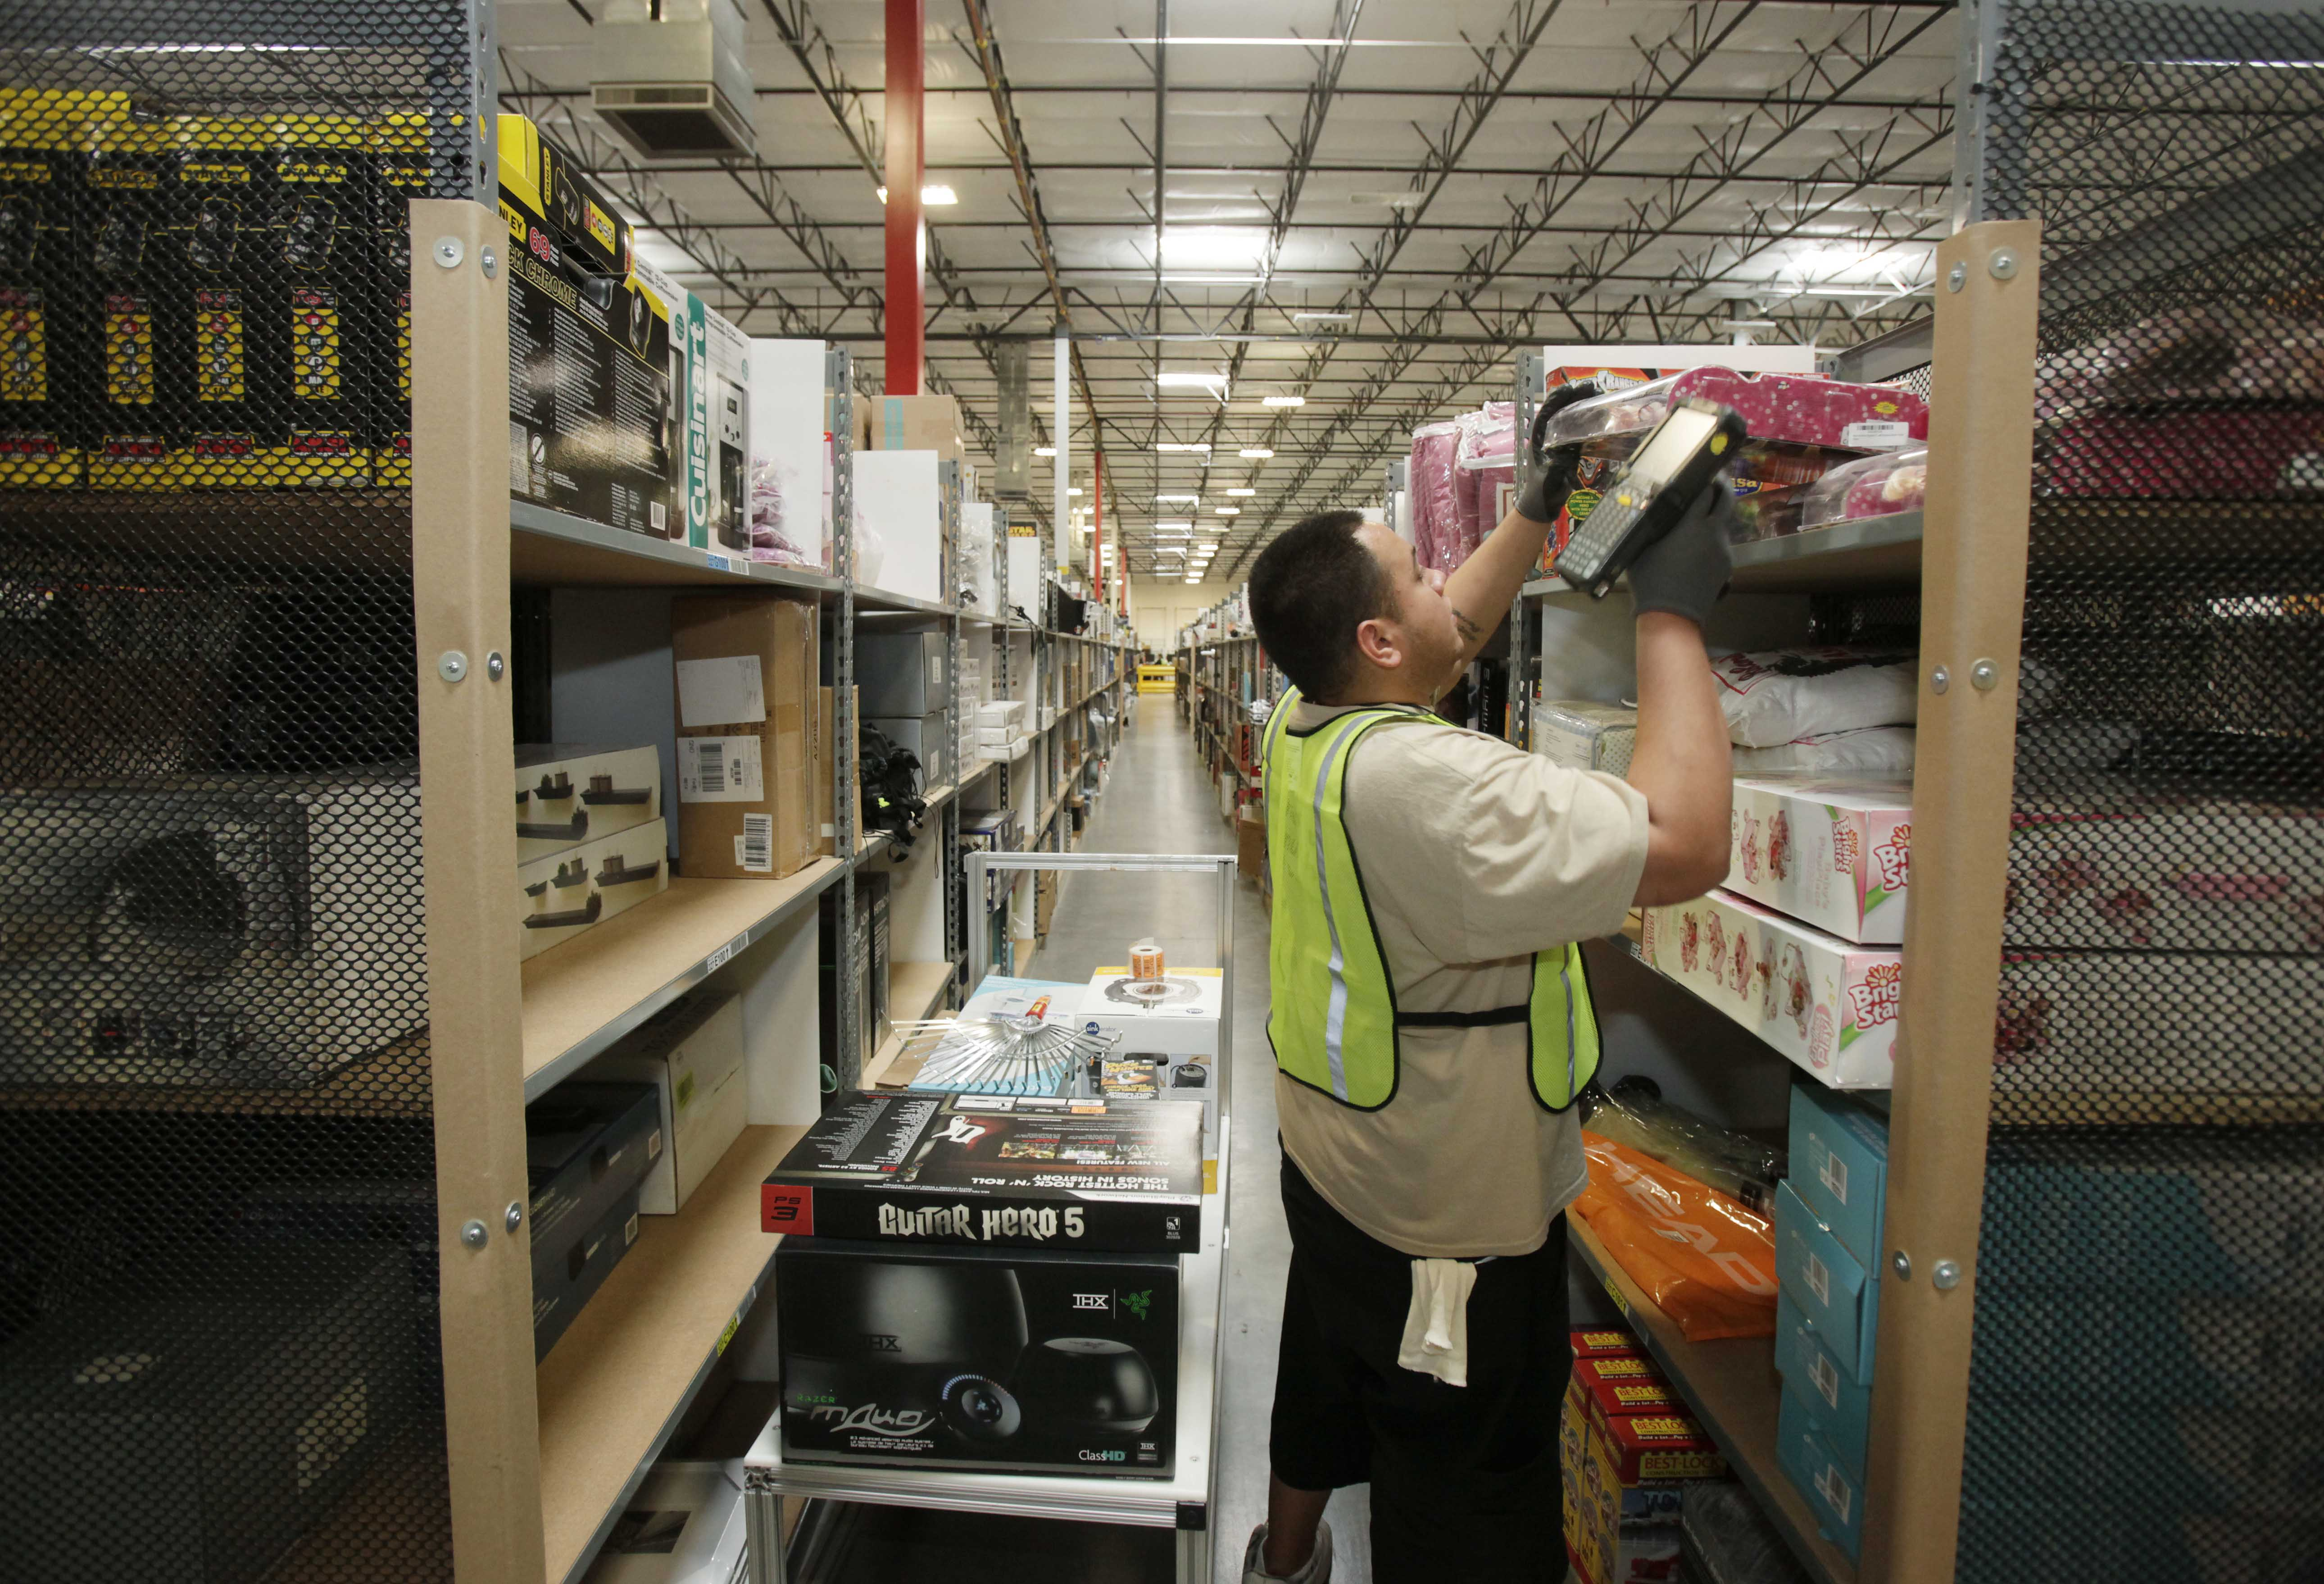 In this November 2009 file photo, Marcus Marintez pulls items for shipment inside the 800,000 sq. ft. Amazon.com warehouse in Goodyear, Ariz. (Ross D. Franklin/AP)